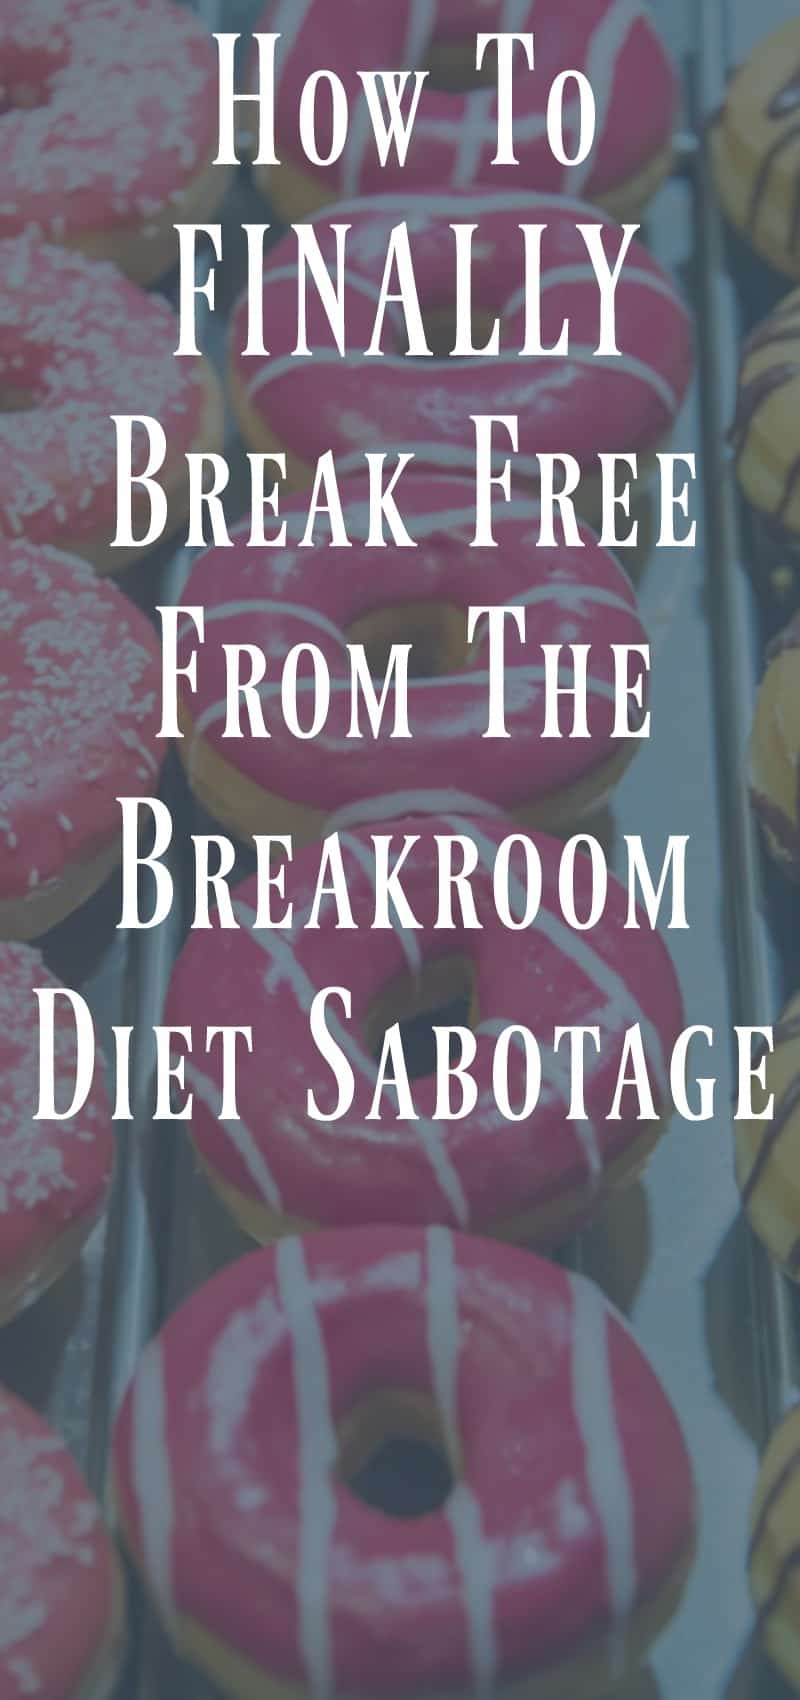 How to Finally Break free From The Breakroom Diet Sabotage